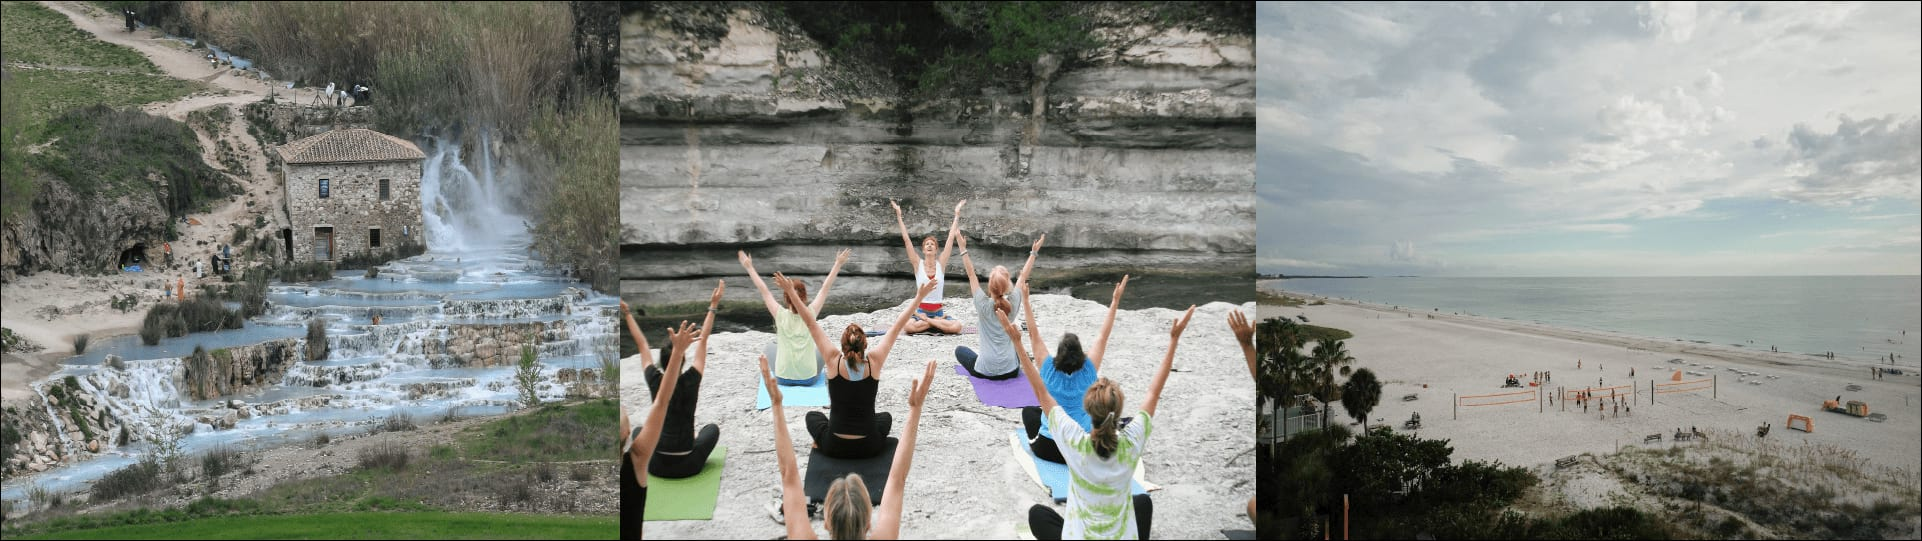 Waterfall, outdoor yoga and beach activities image